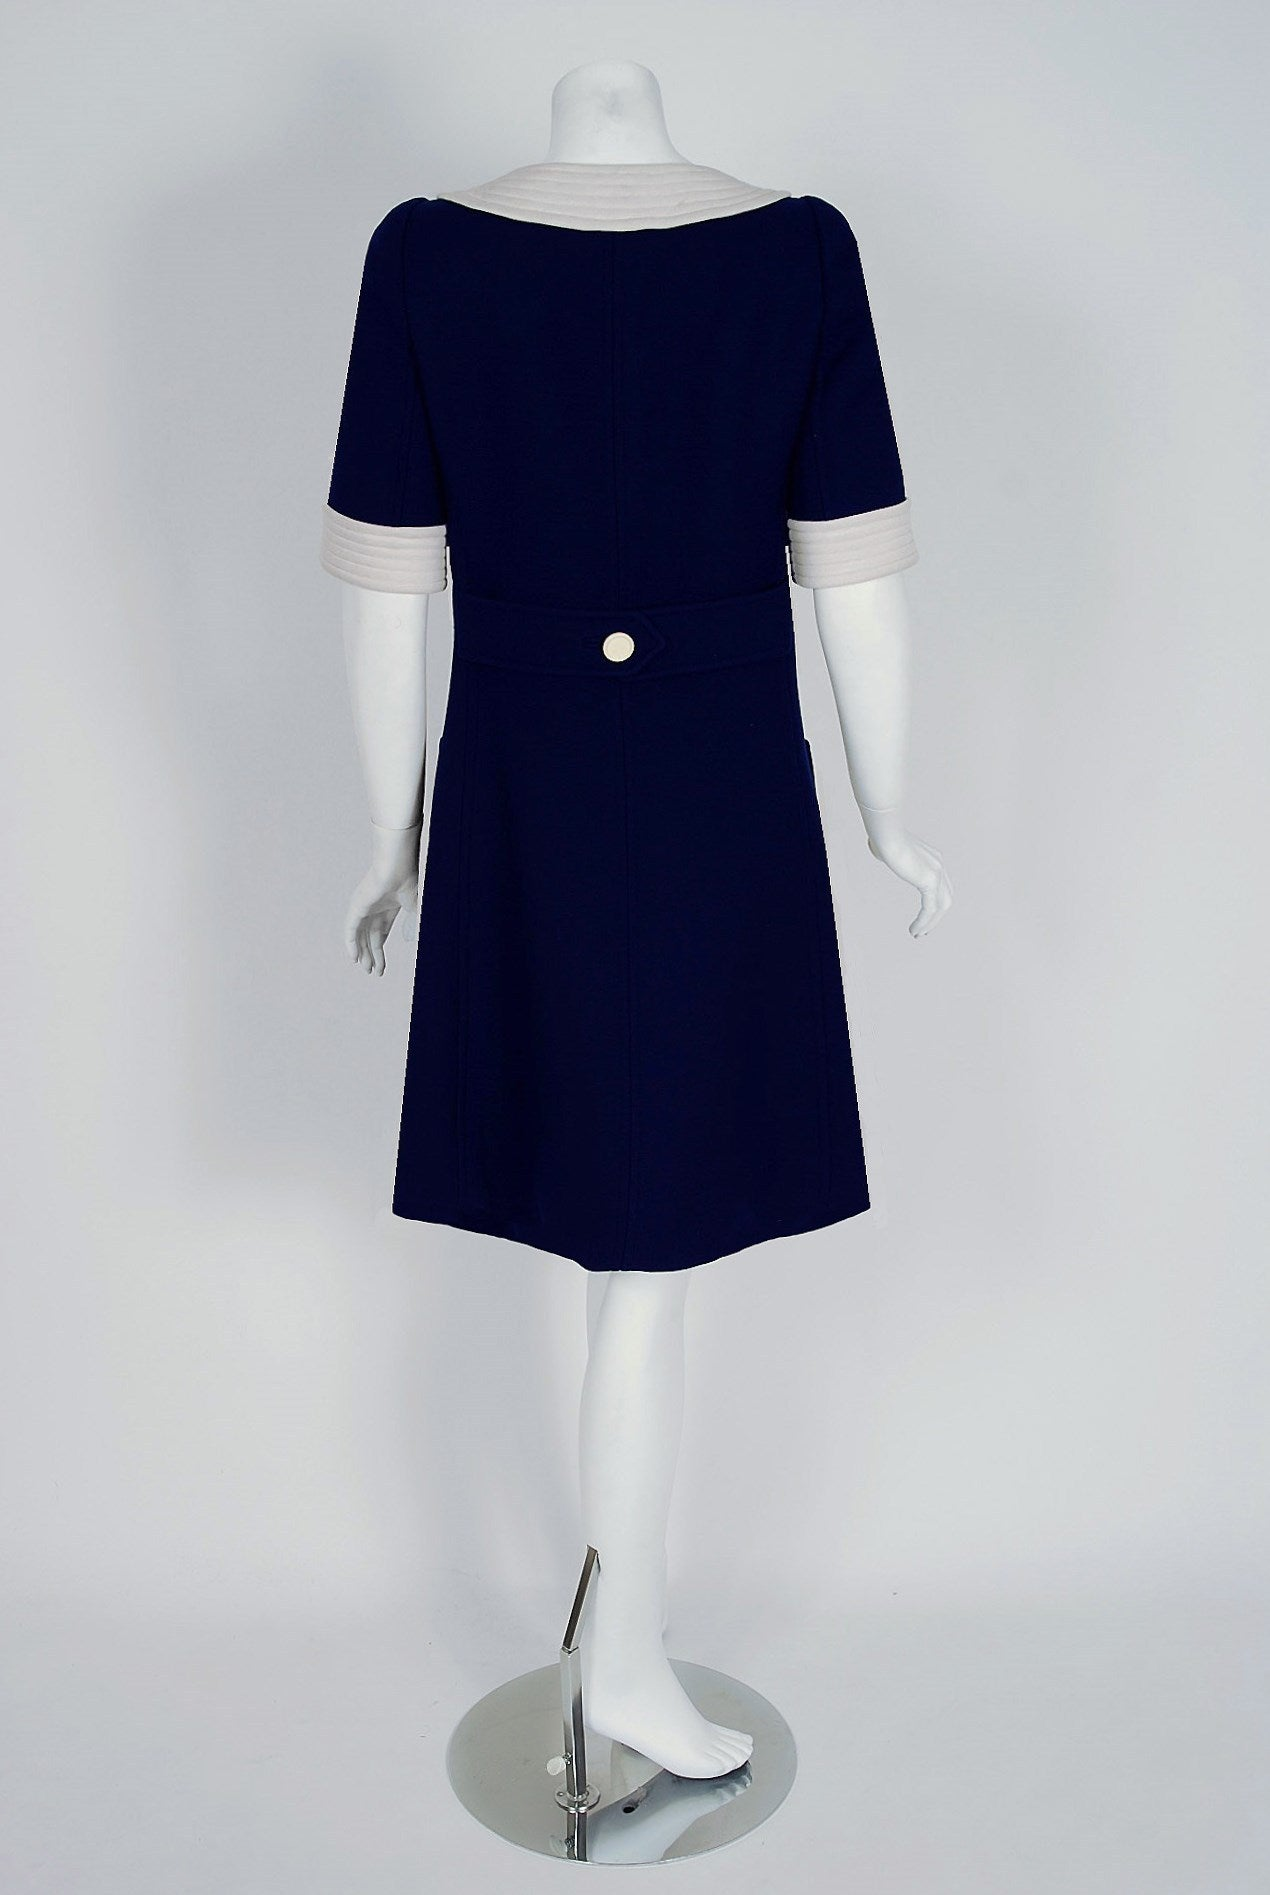 1967 Courreges Couture Navy Blue And White Wool Block